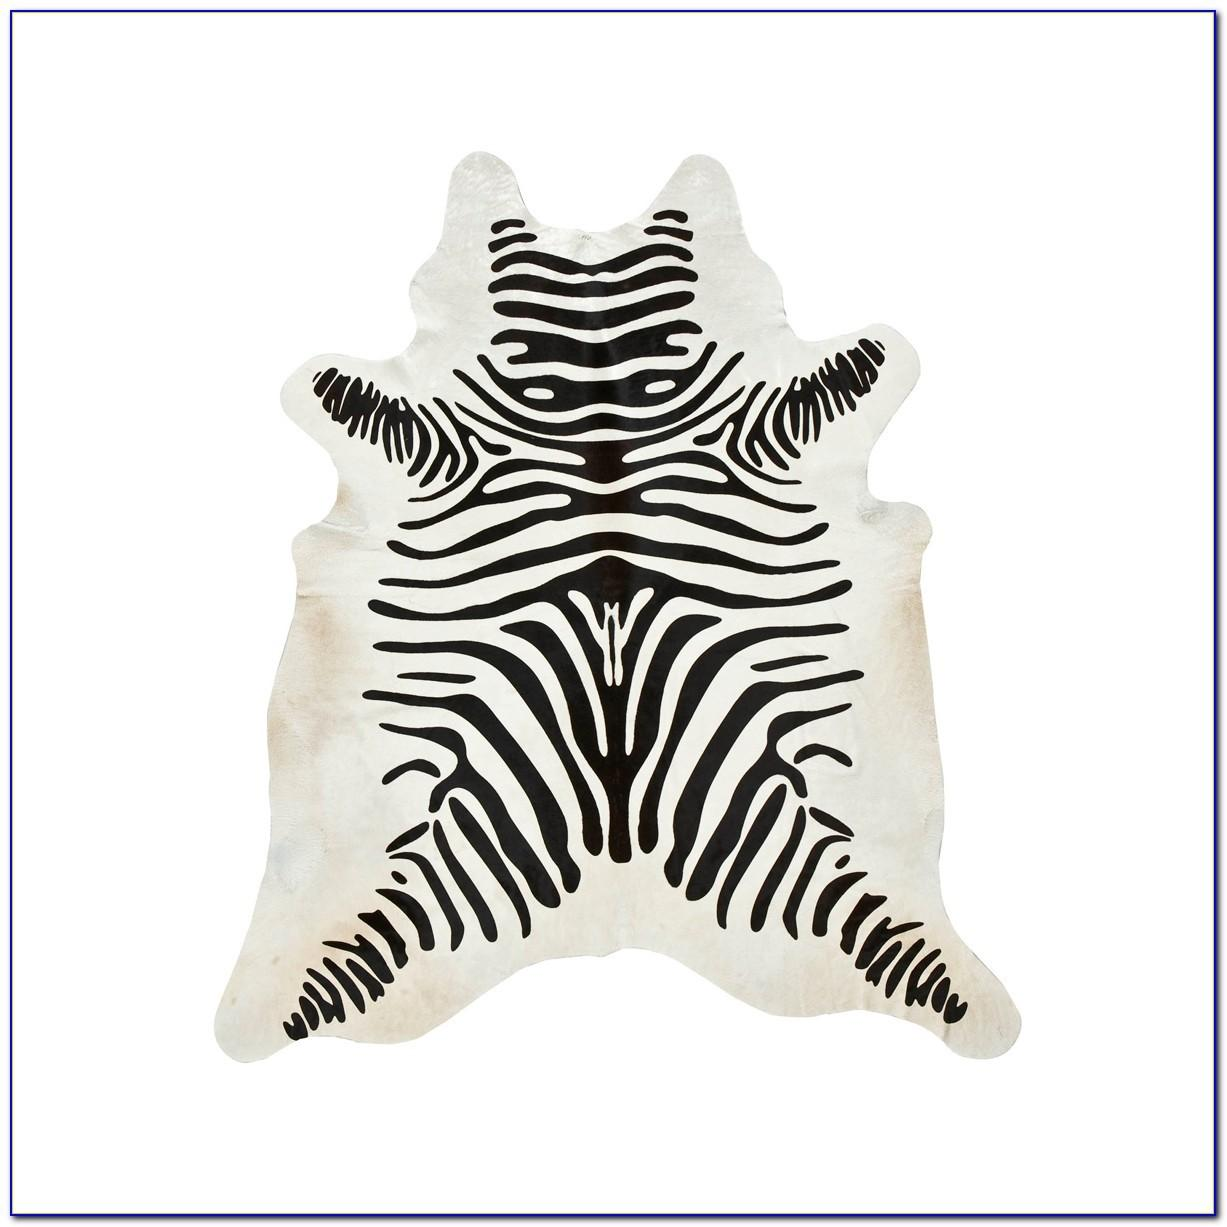 Zebra Cowhide Rug West Elm Rugs Home Design Ideas